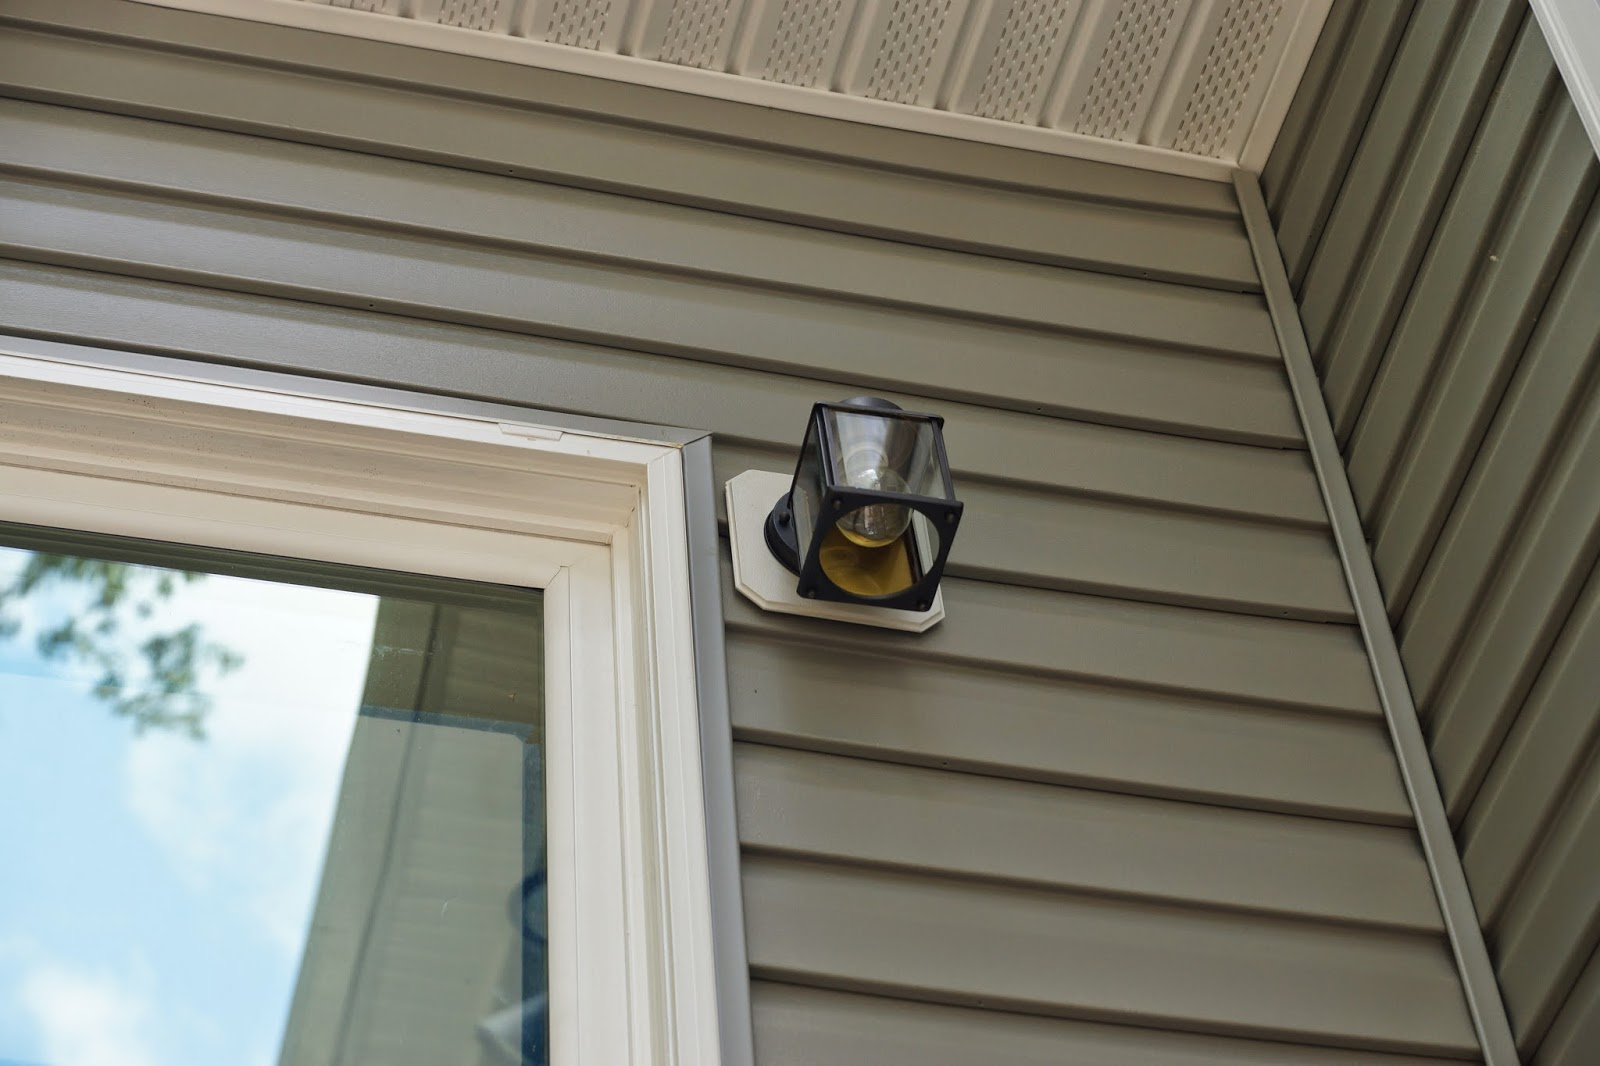 A picture of the backdoor light fixture